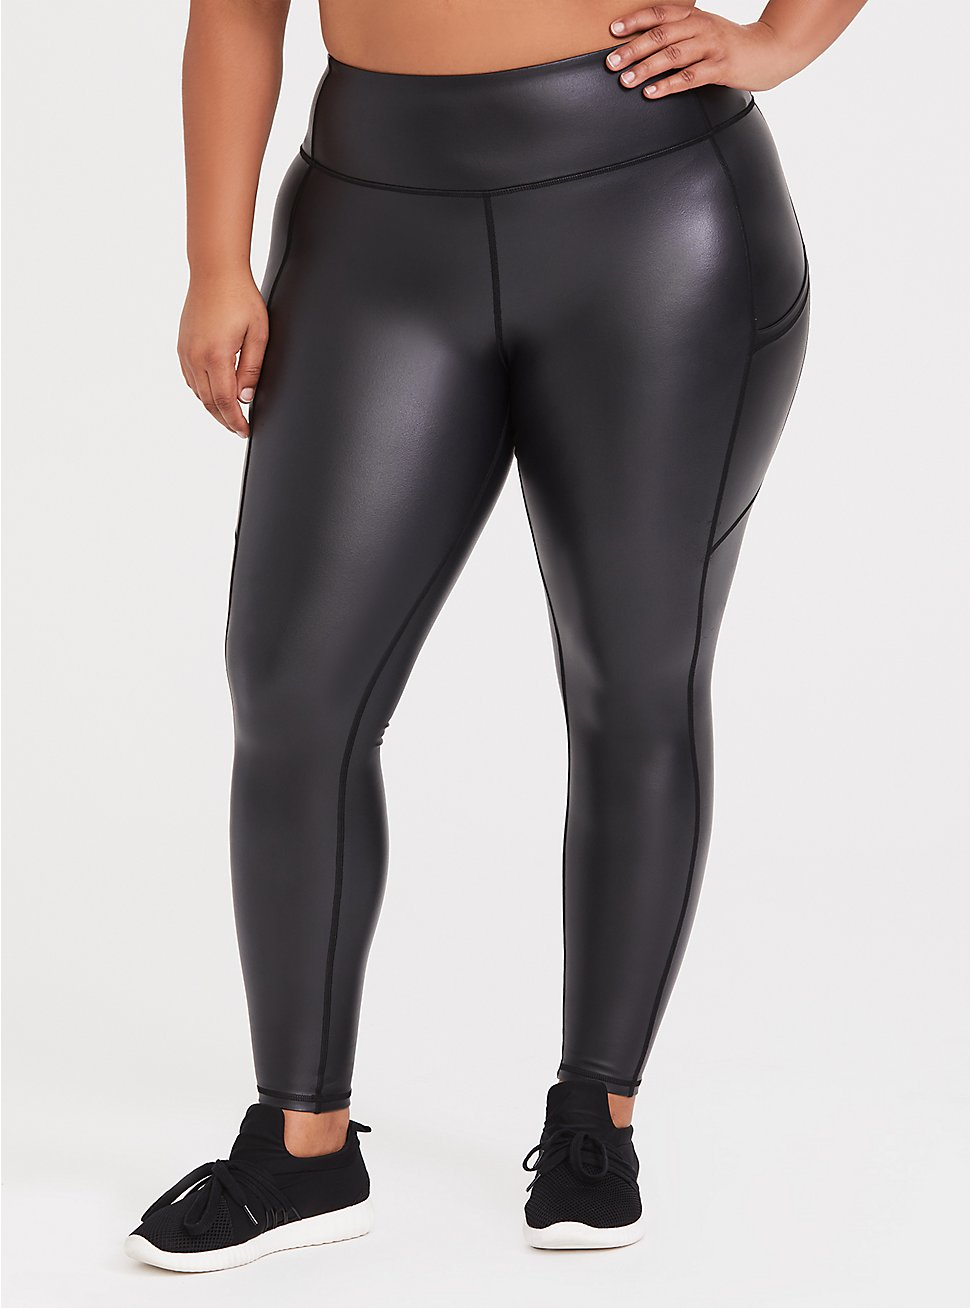 Black Coated Active Legging with Pockets, DEEP BLACK, hi-res